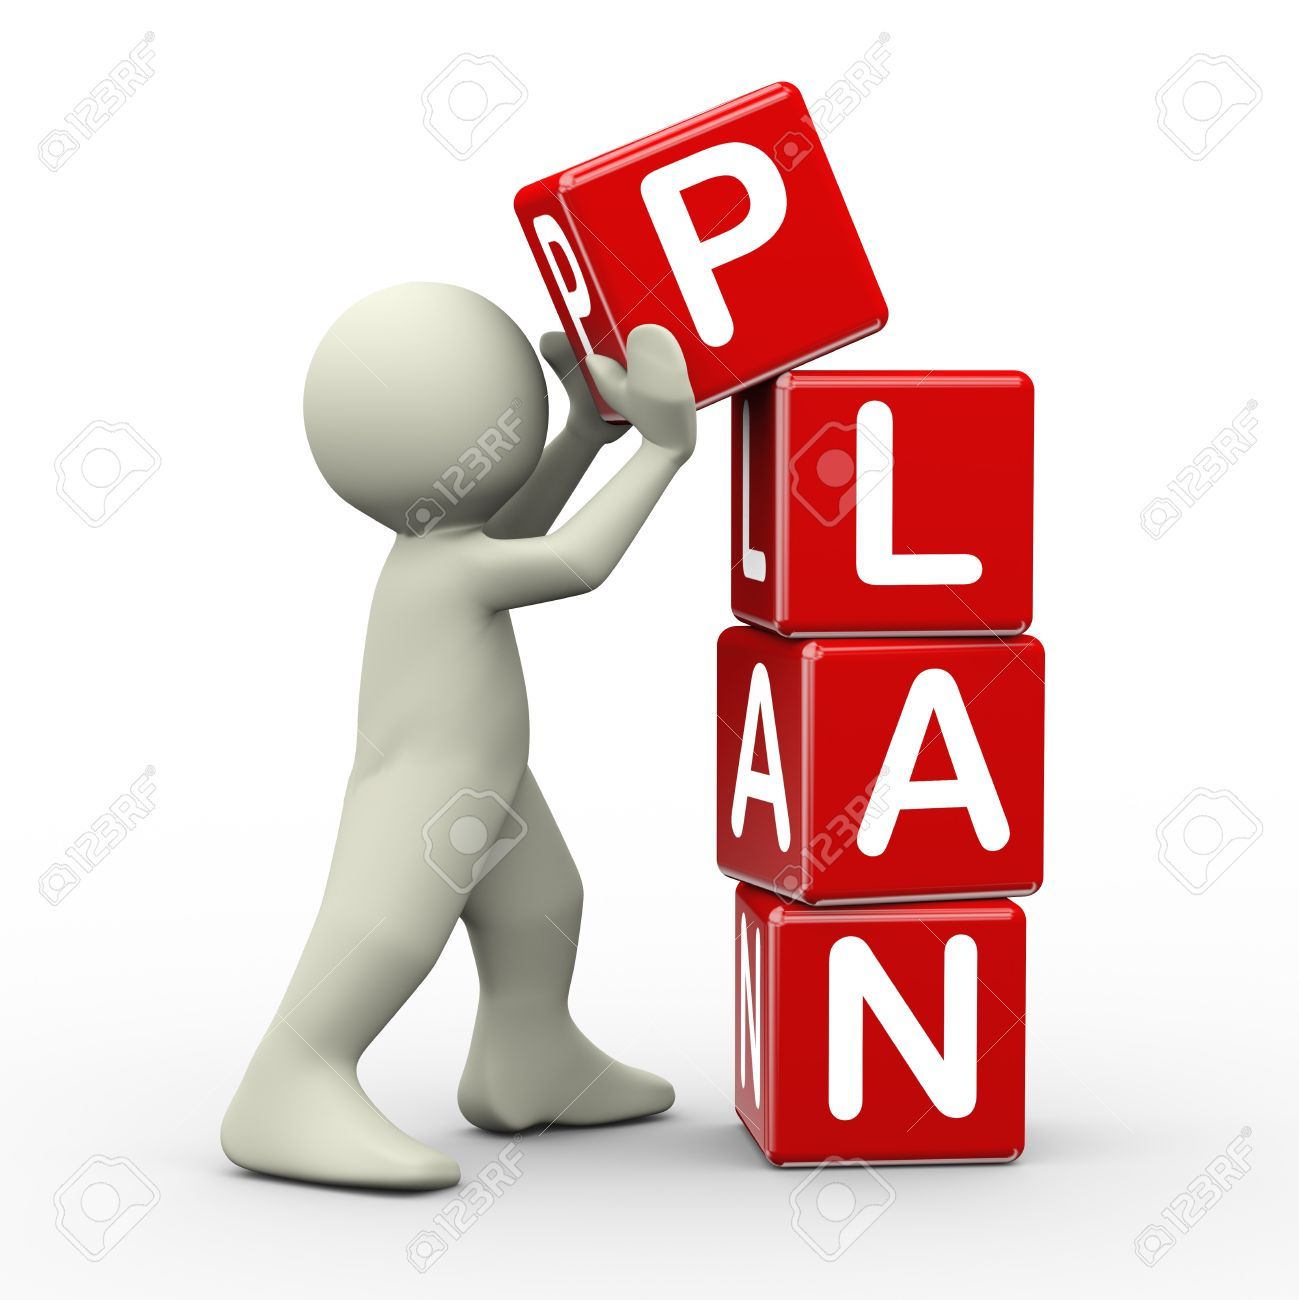 Action Plan Images Pictures Royalty Free Action Plan – Action Plan